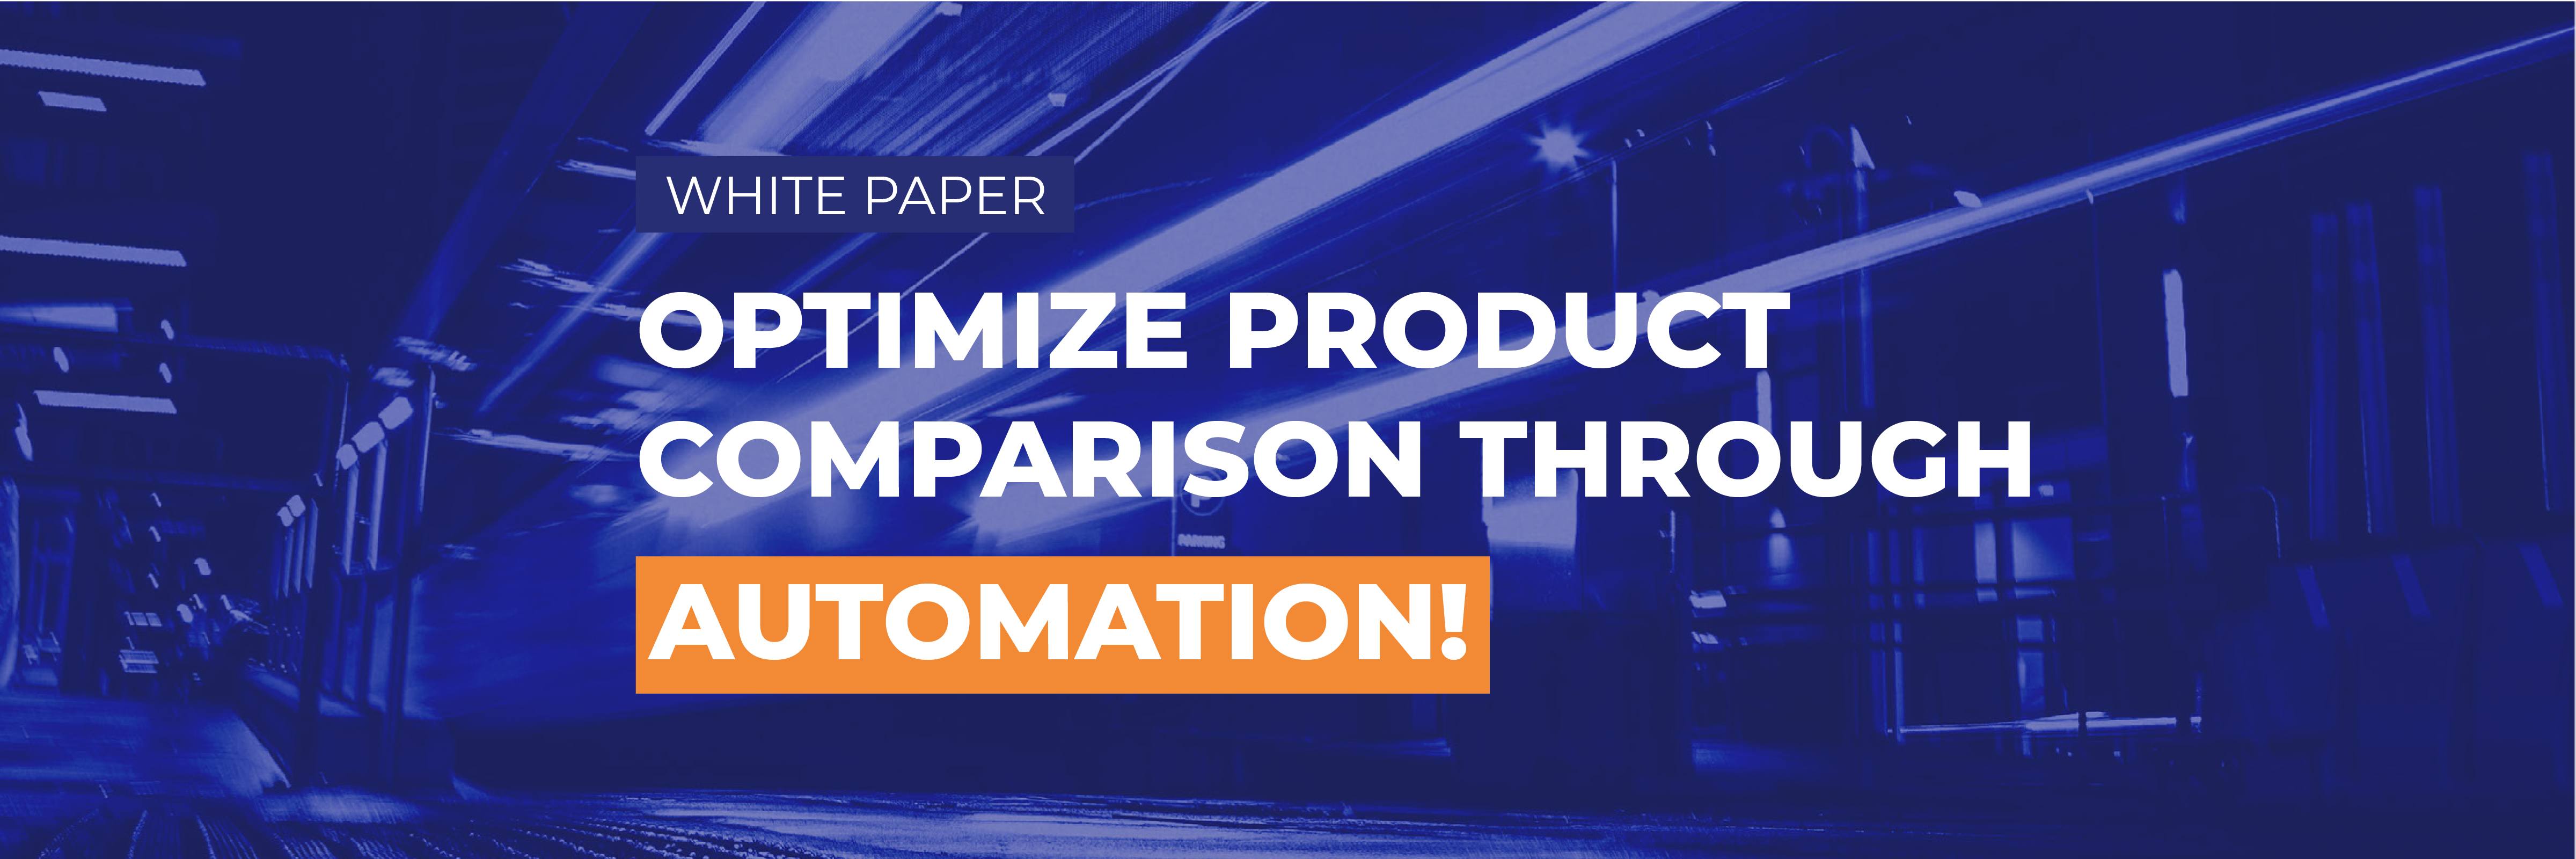 [White Paper] Optimize the comparison of your products through automation!